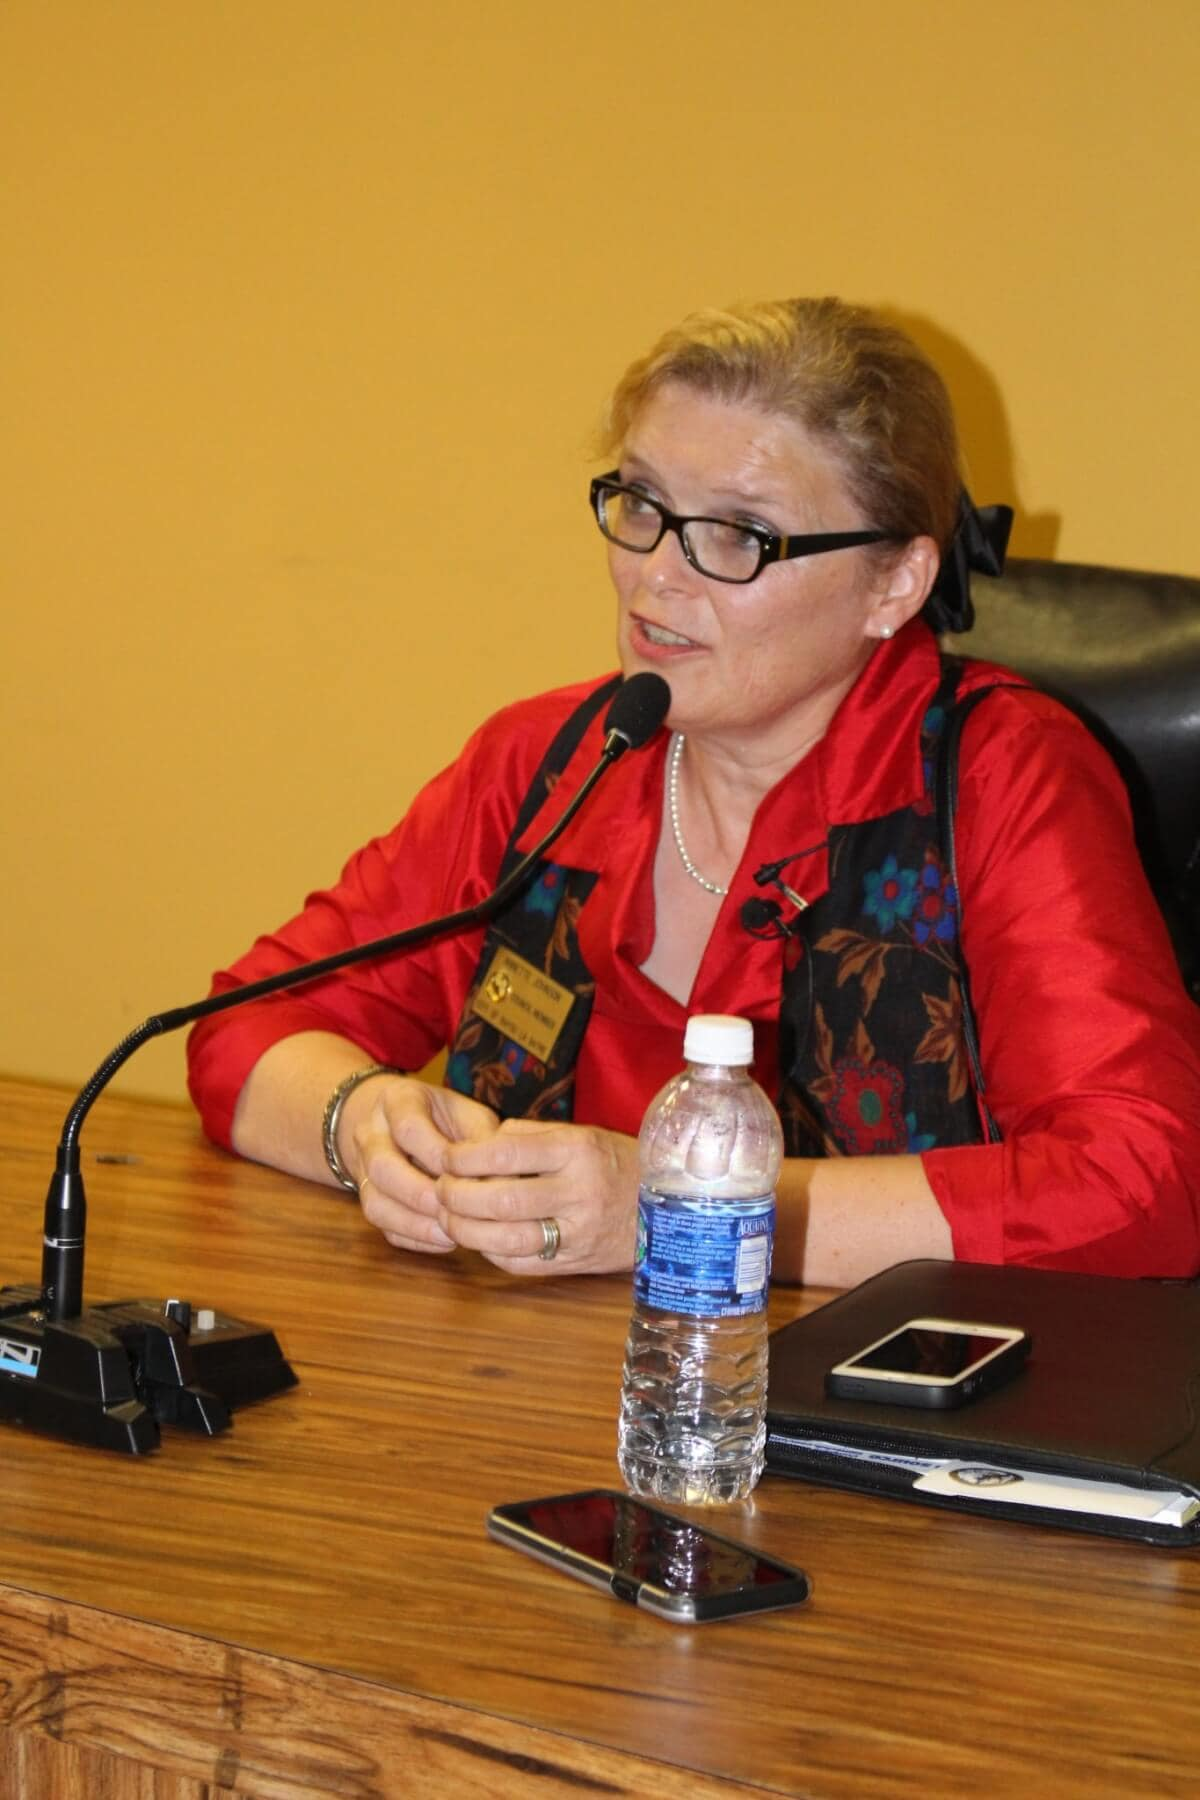 Johnson appointed as Bayou mayor, discusses finances